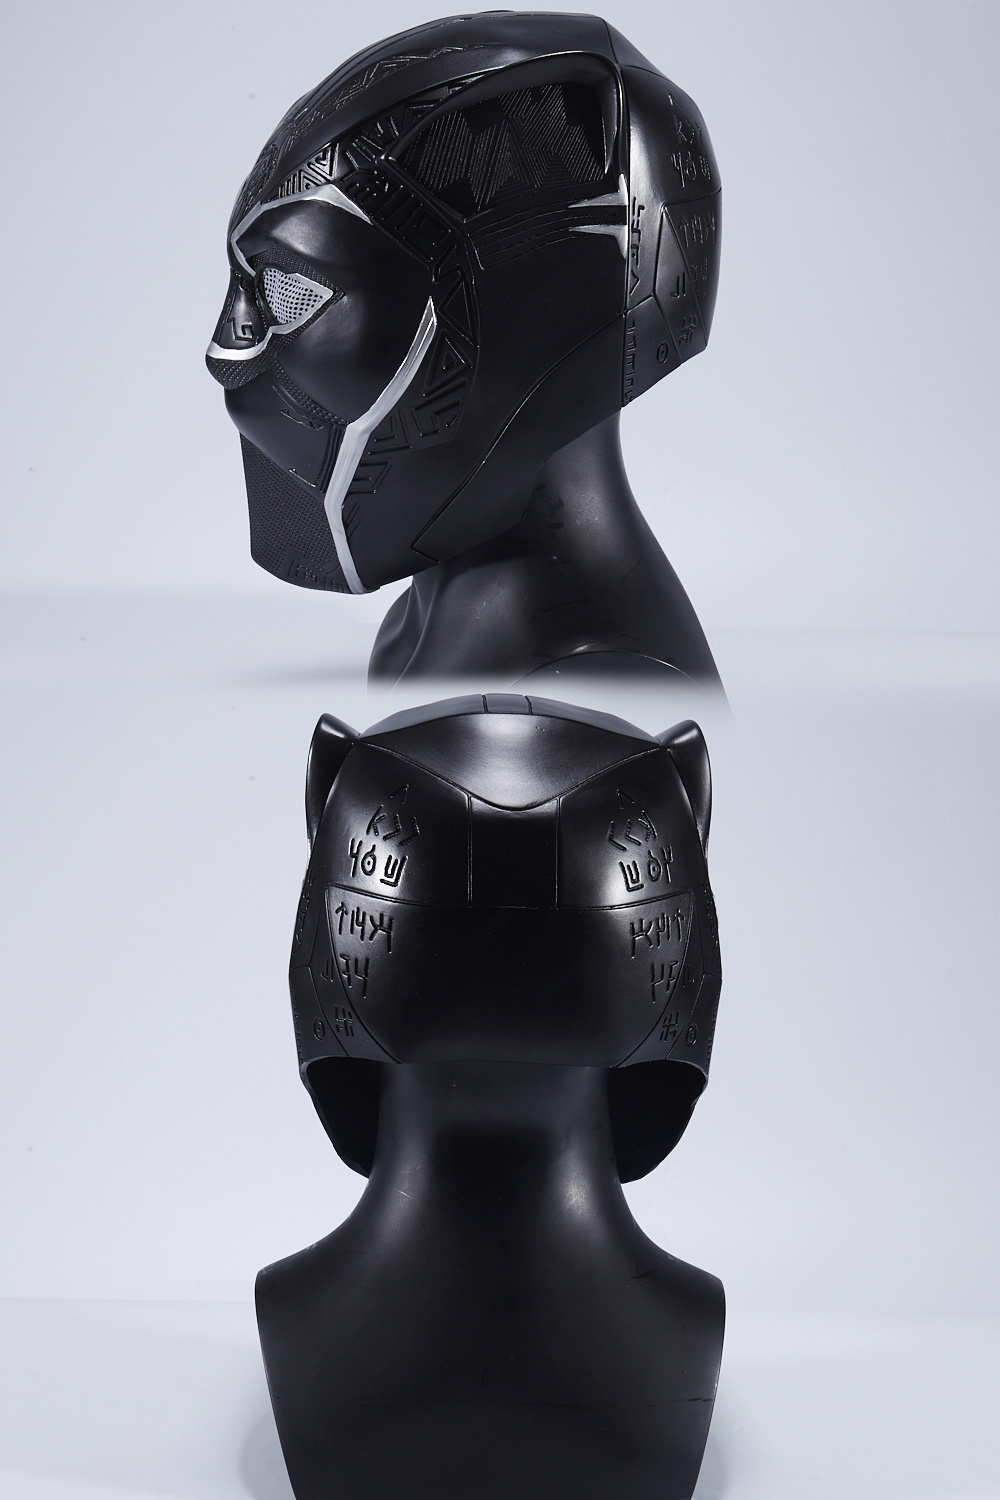 New Year Captain America Civil War T'Challa Black Panther Wakanda Cosplay Mask Black Helmet Carnival Party Mask For Adult 2018 (4)